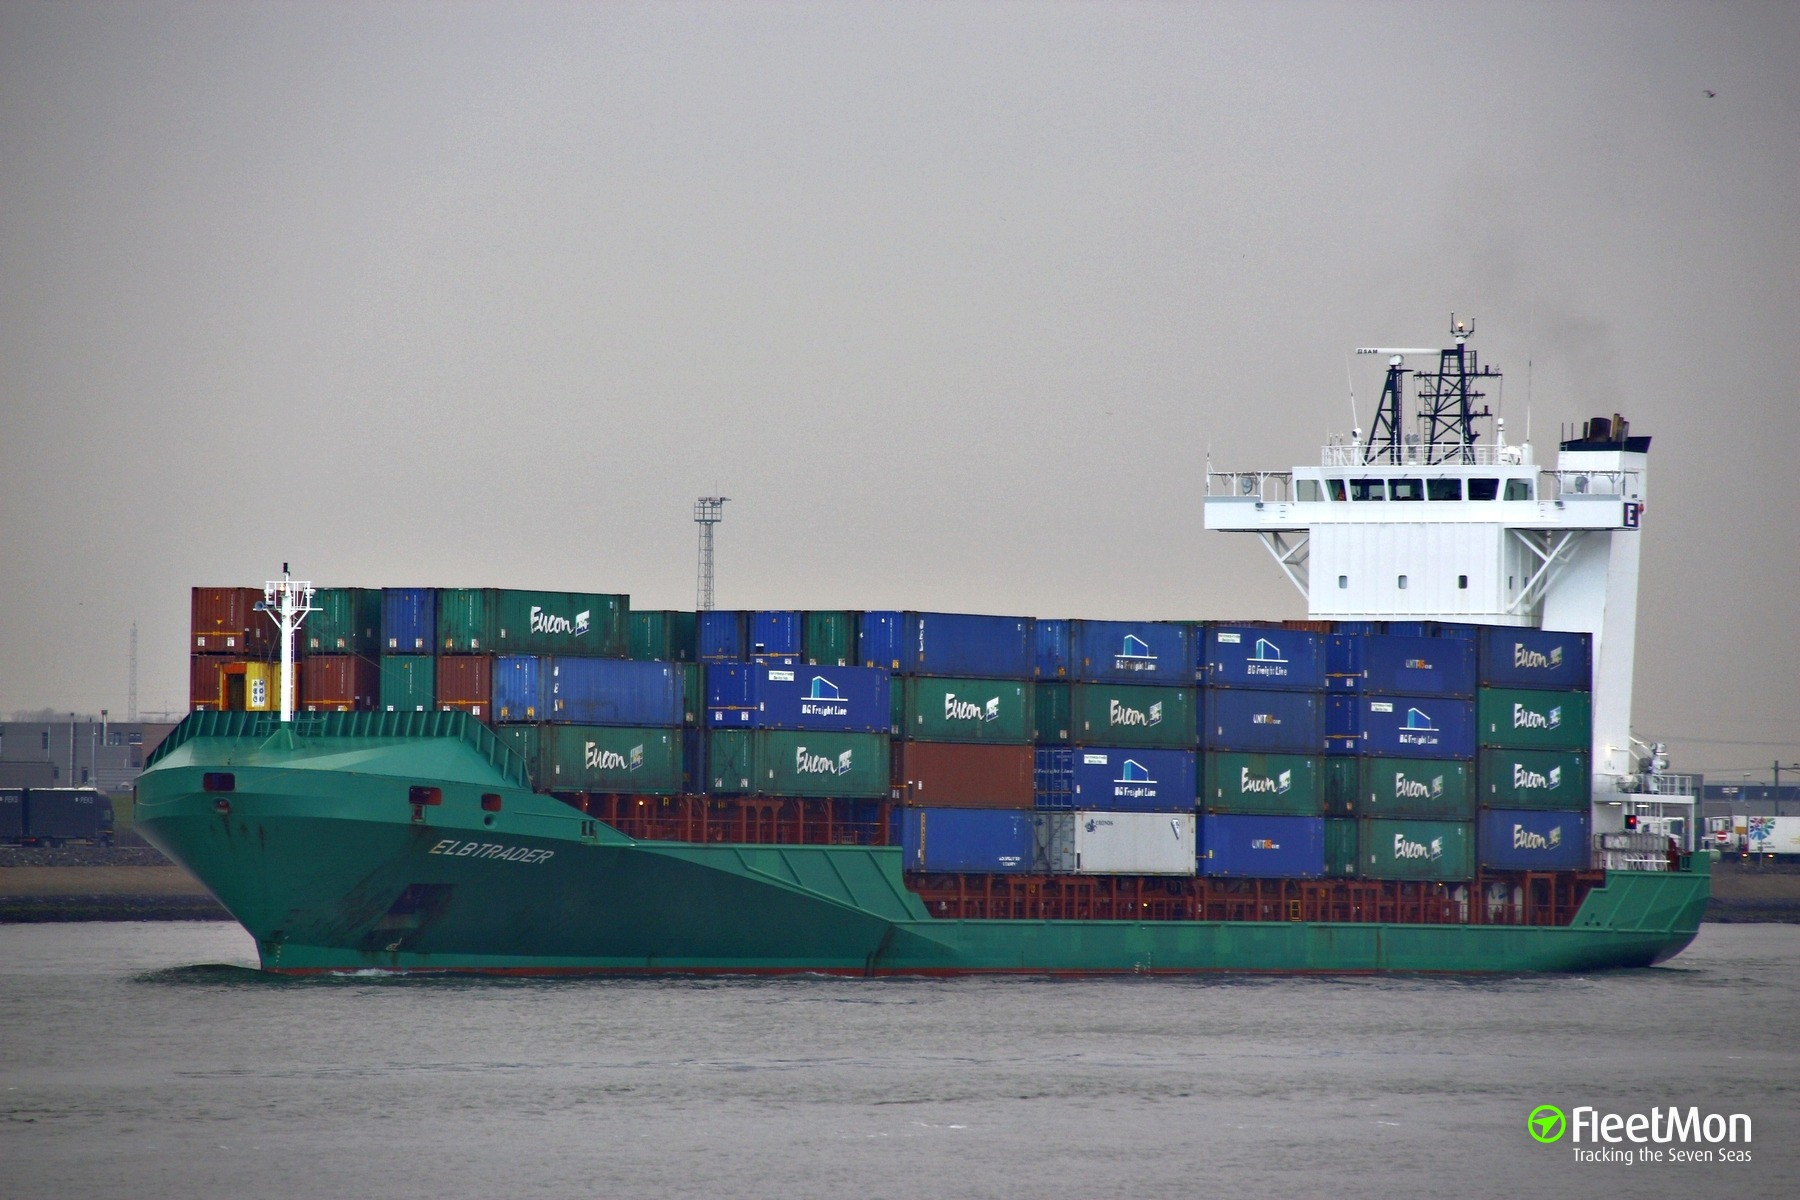 Chief Engineer of container ship died in accident in Dublin